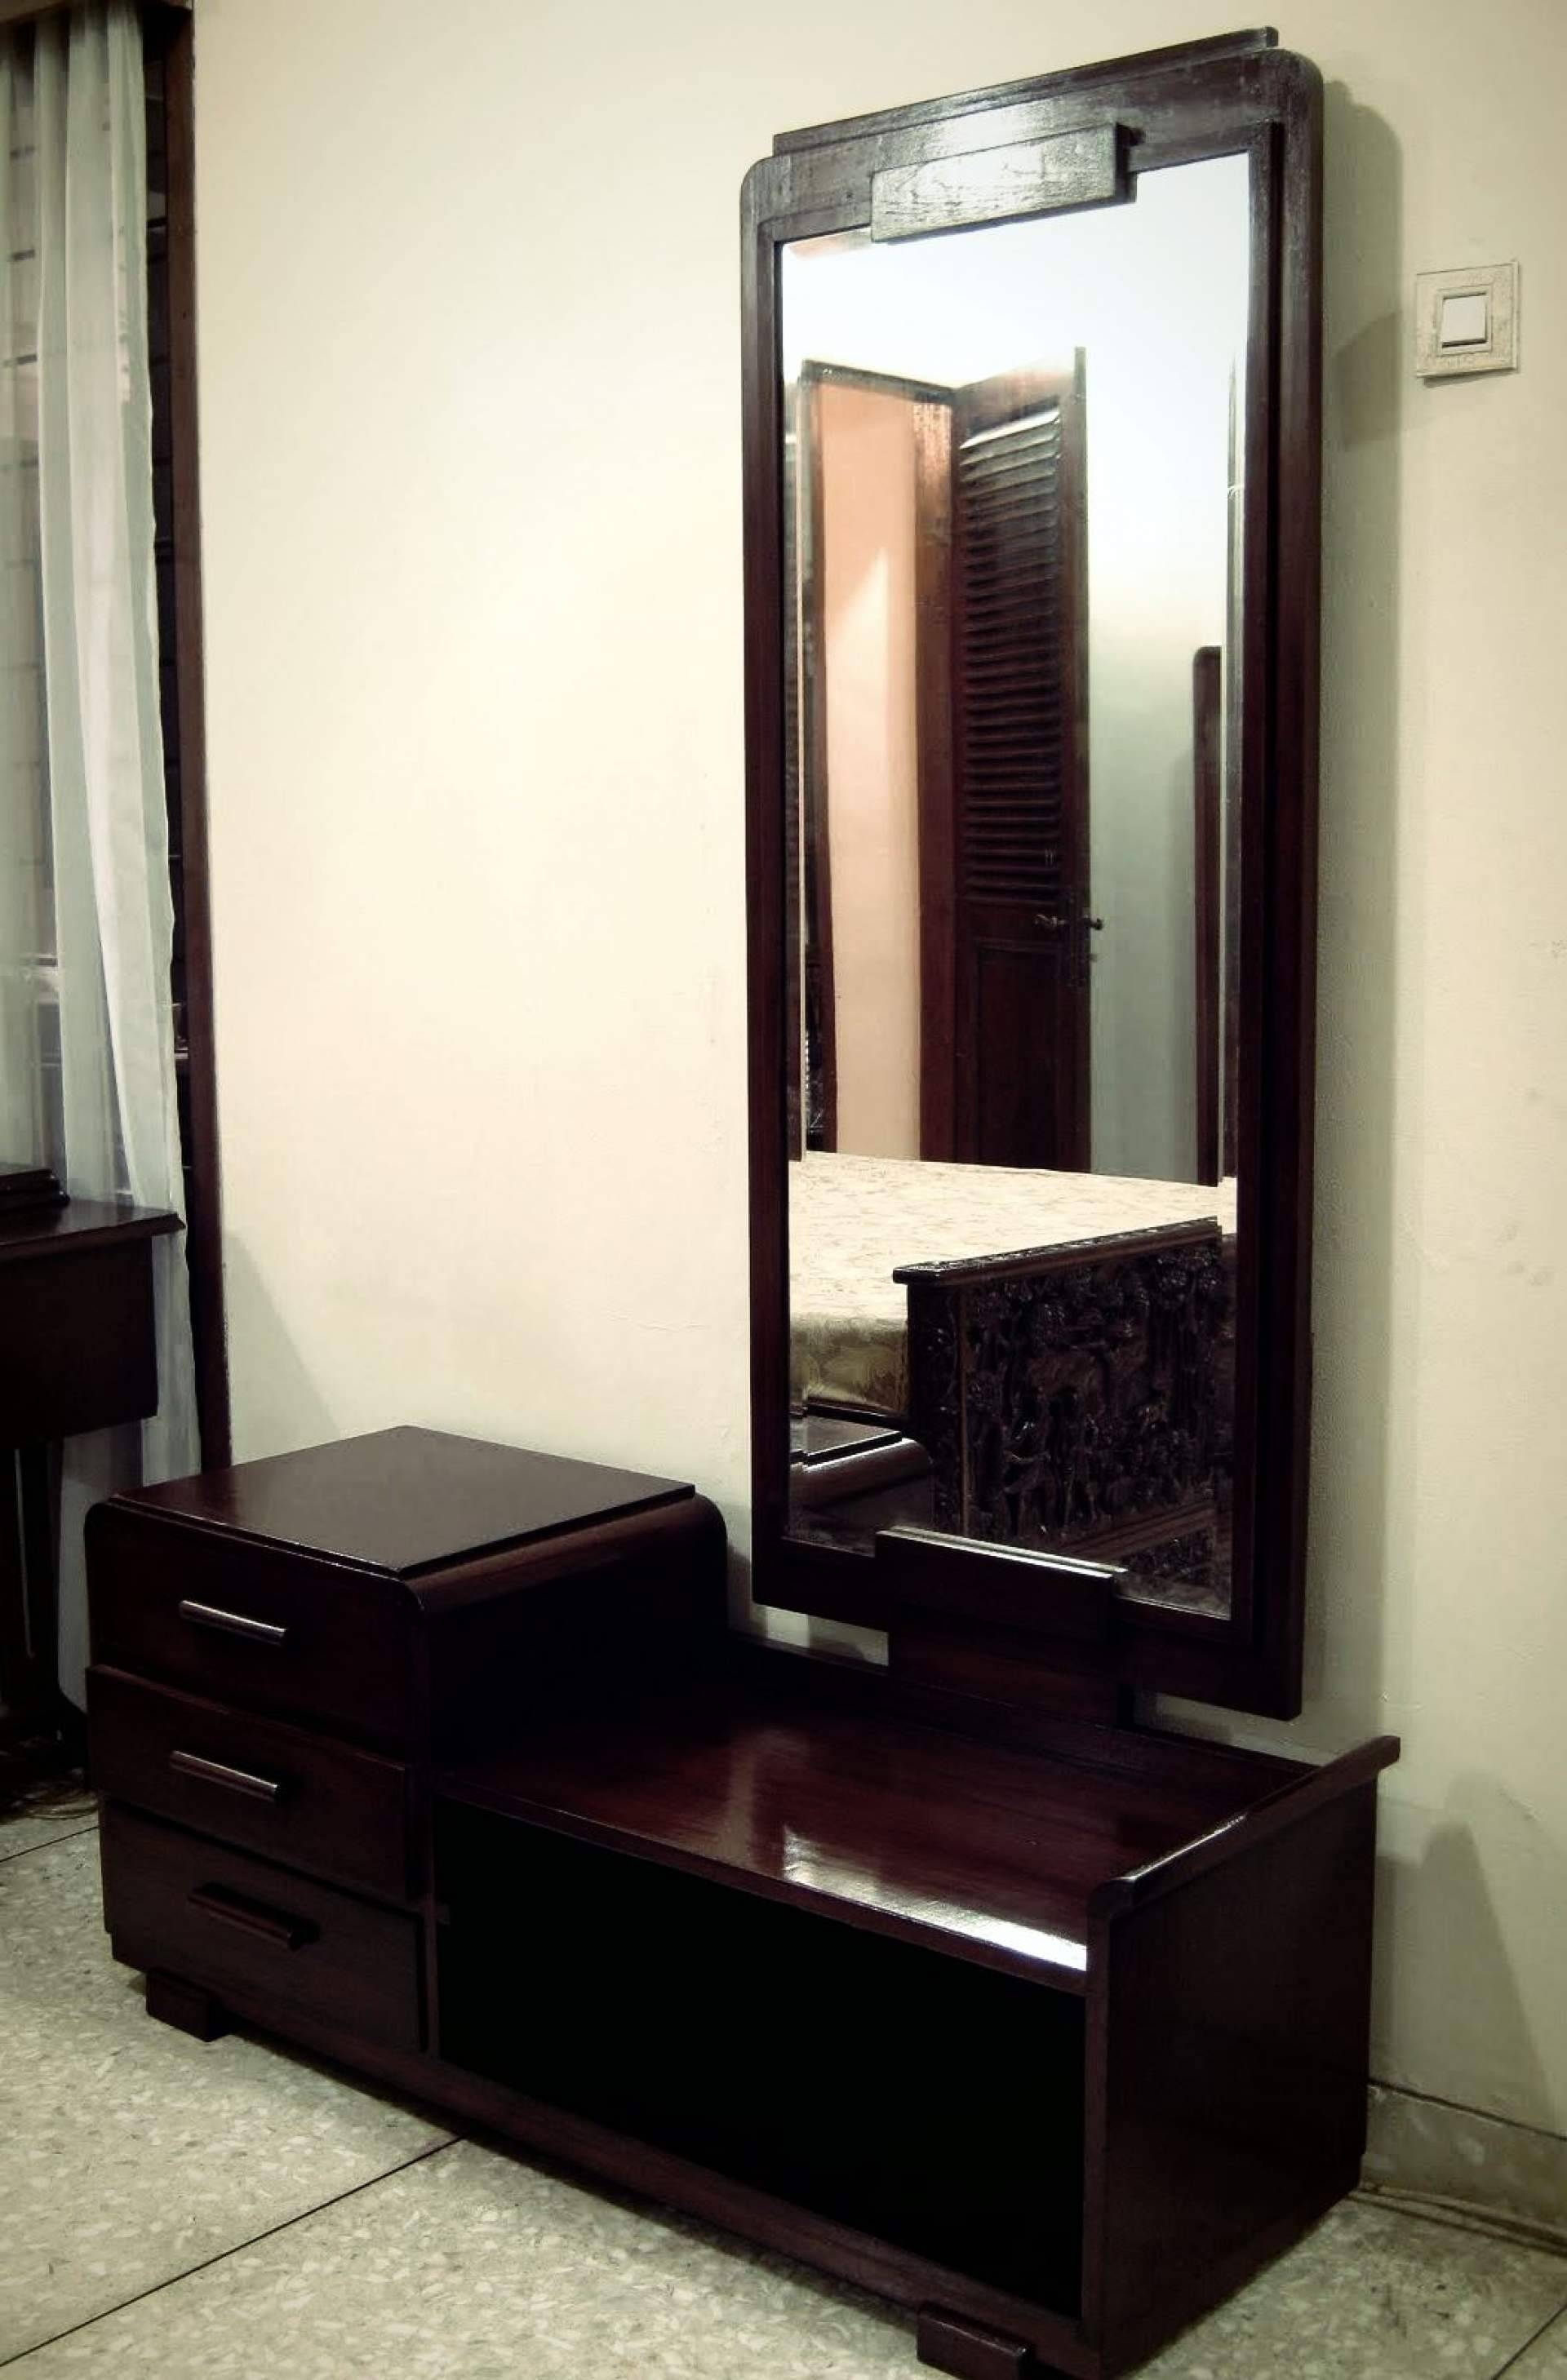 Bedroom : Cool Oversized Wall Mirrors Large Dining Room Mirror regarding Floor Dressing Mirrors (Image 1 of 15)